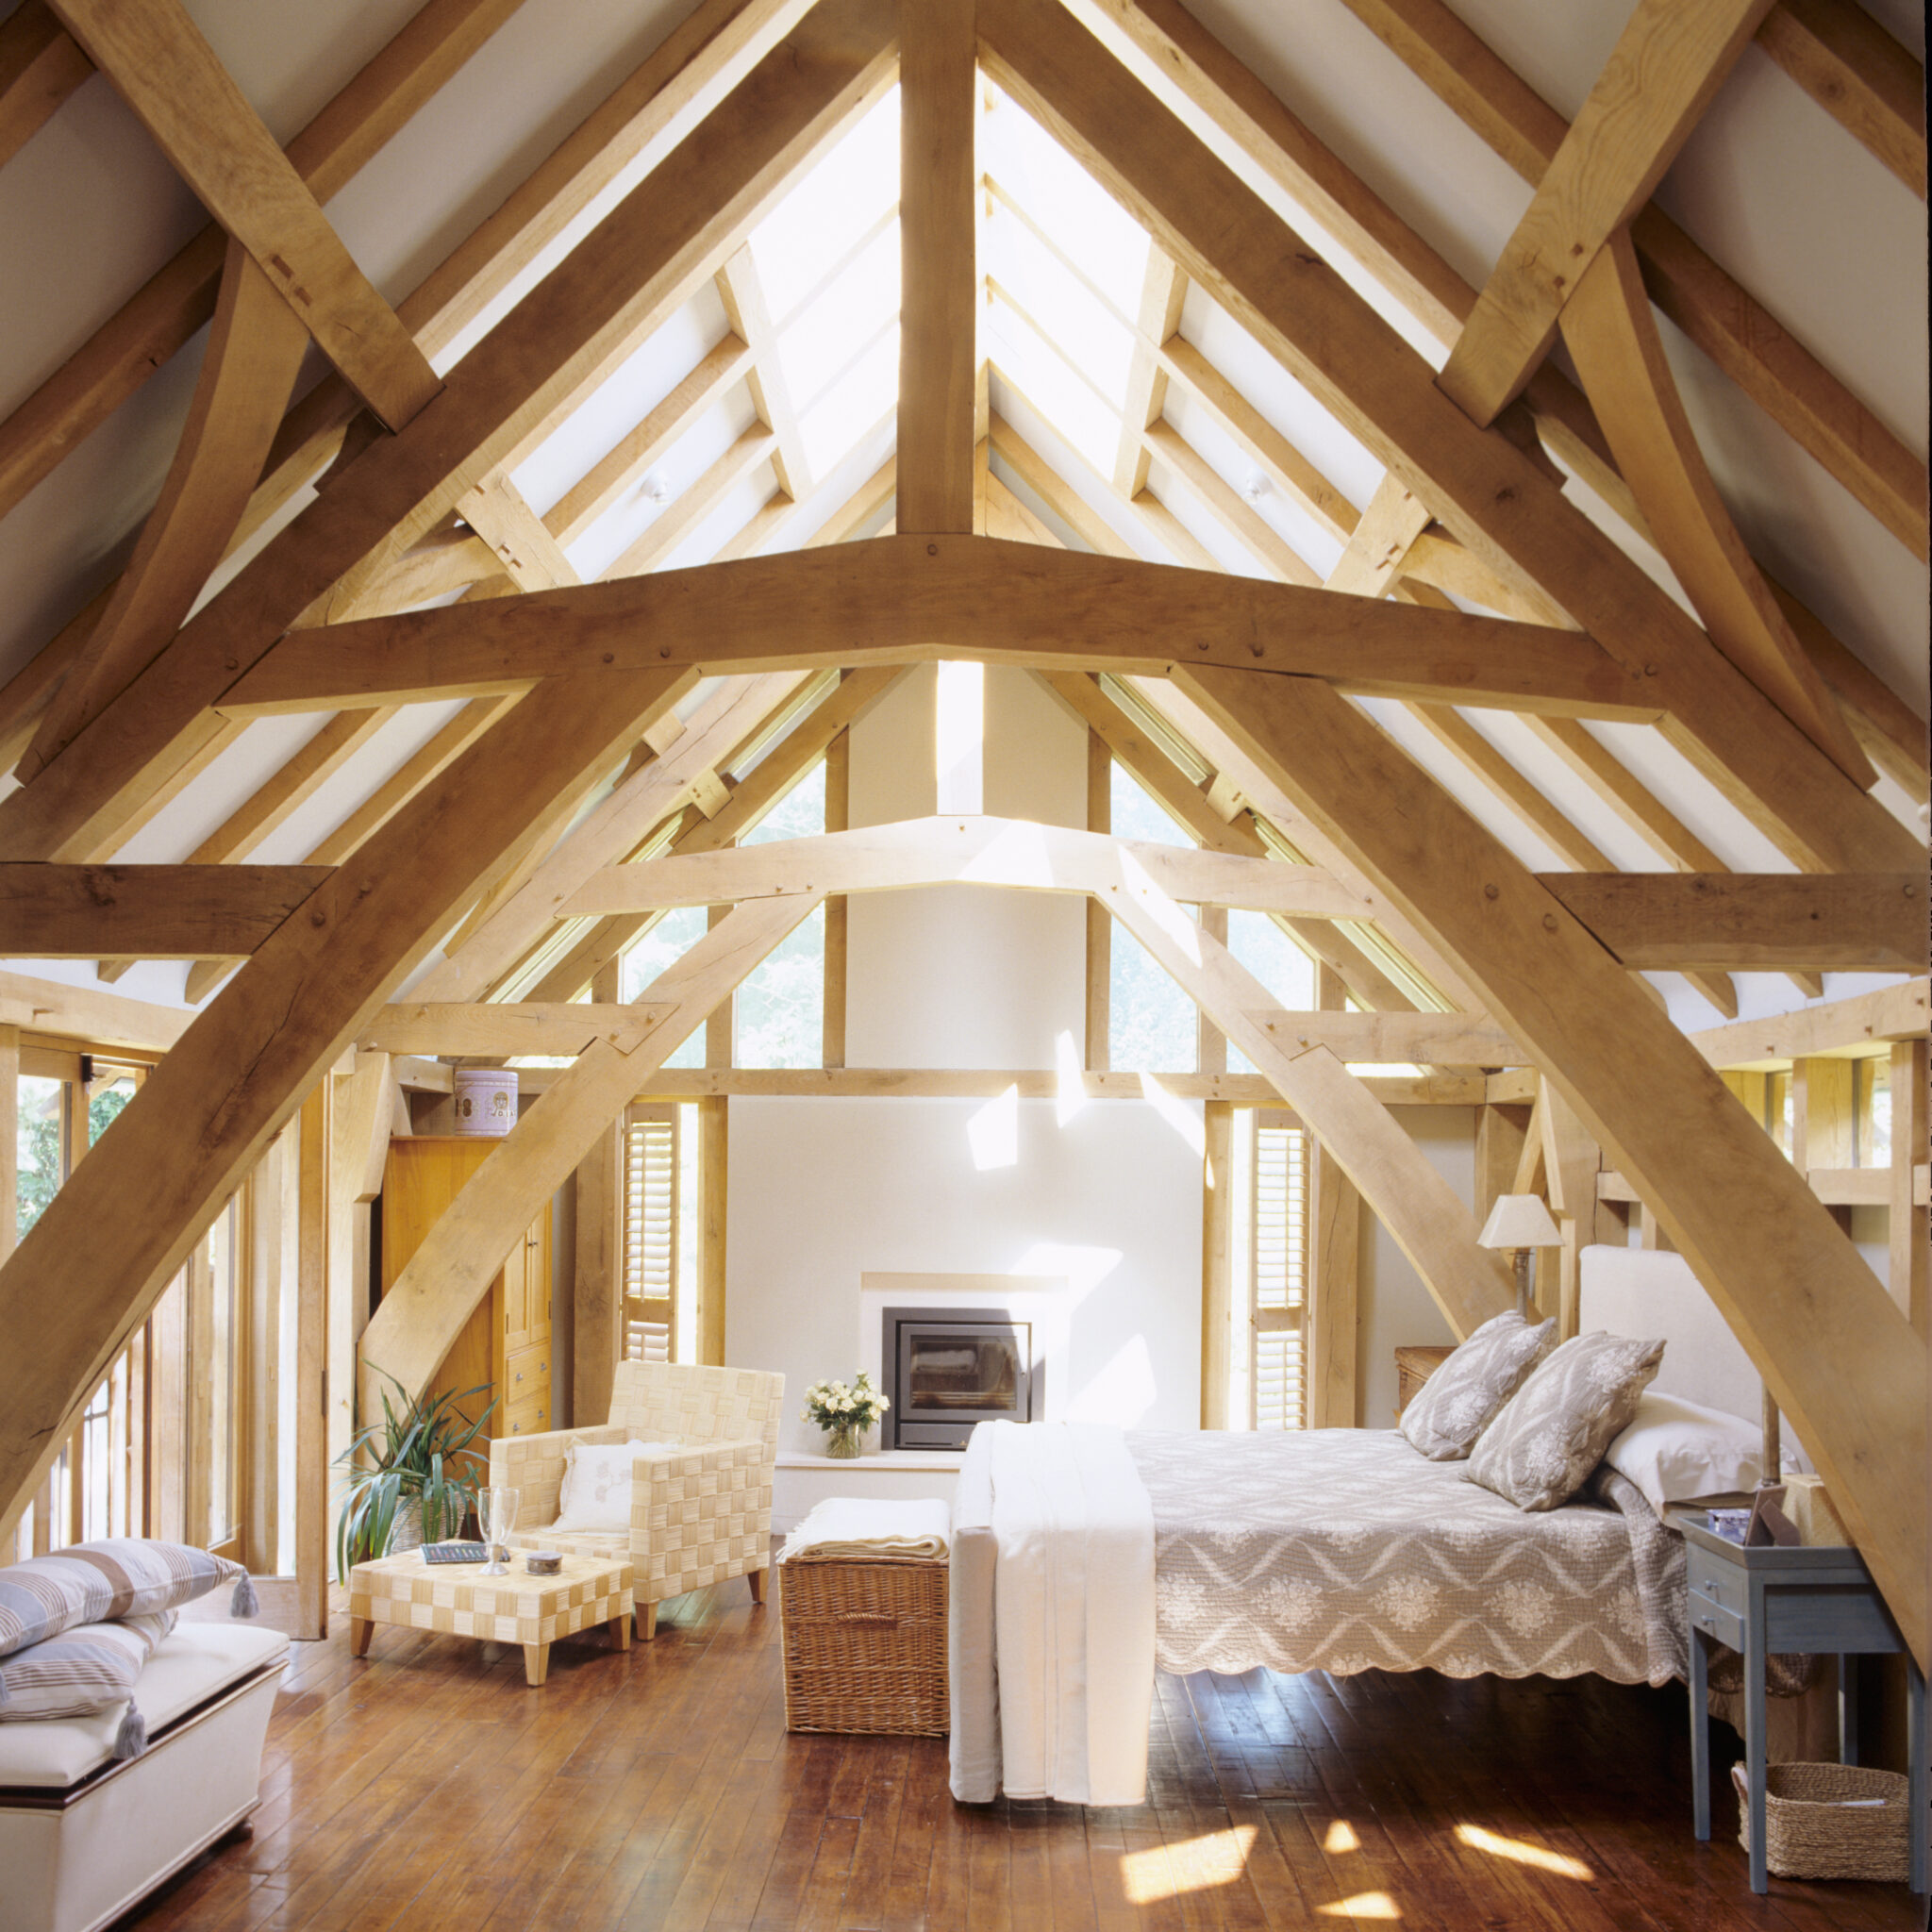 Edwardian style country house | Flooring Attic